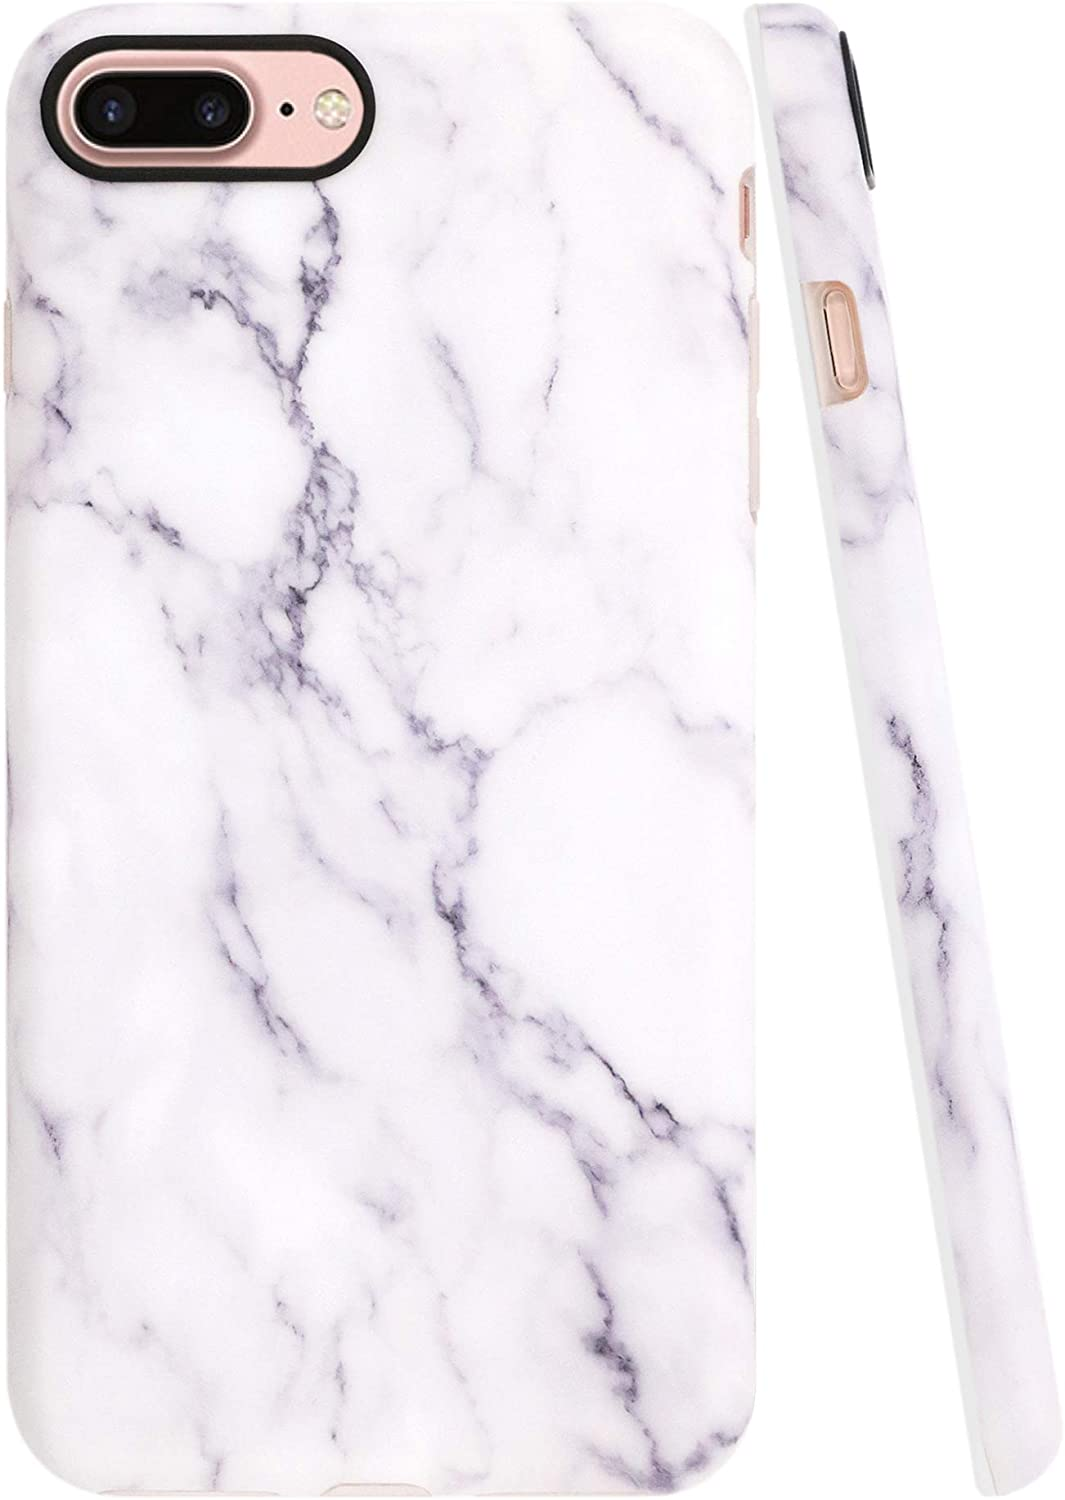 A-Focus Case for iPhone 8 Plus Case Marble, iPhone 7 Plus Case, White Marble Texture Pattern IMD Design Protective Anti Scratch Slim Flexible TPU Case for iPhone 7 Plus 8 Plus 5.5 inch Matte Gray